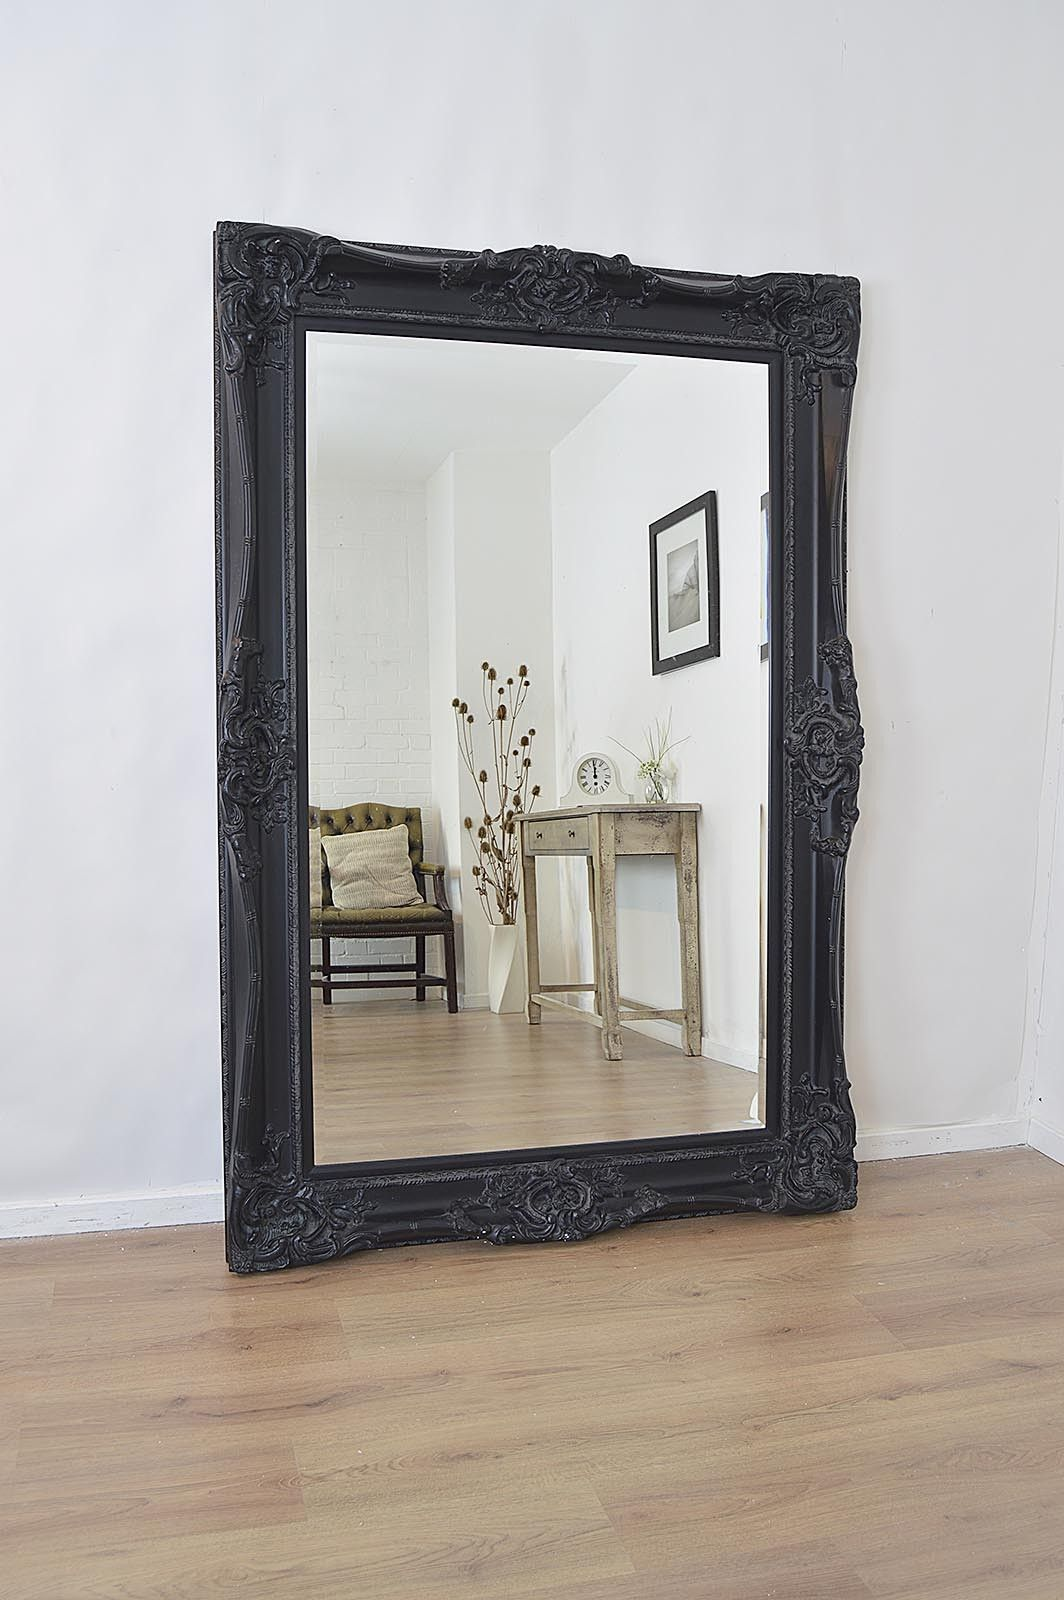 6Ft X 4Ft Large Black Antique Style Rectangle Wood Wall Mirror ...